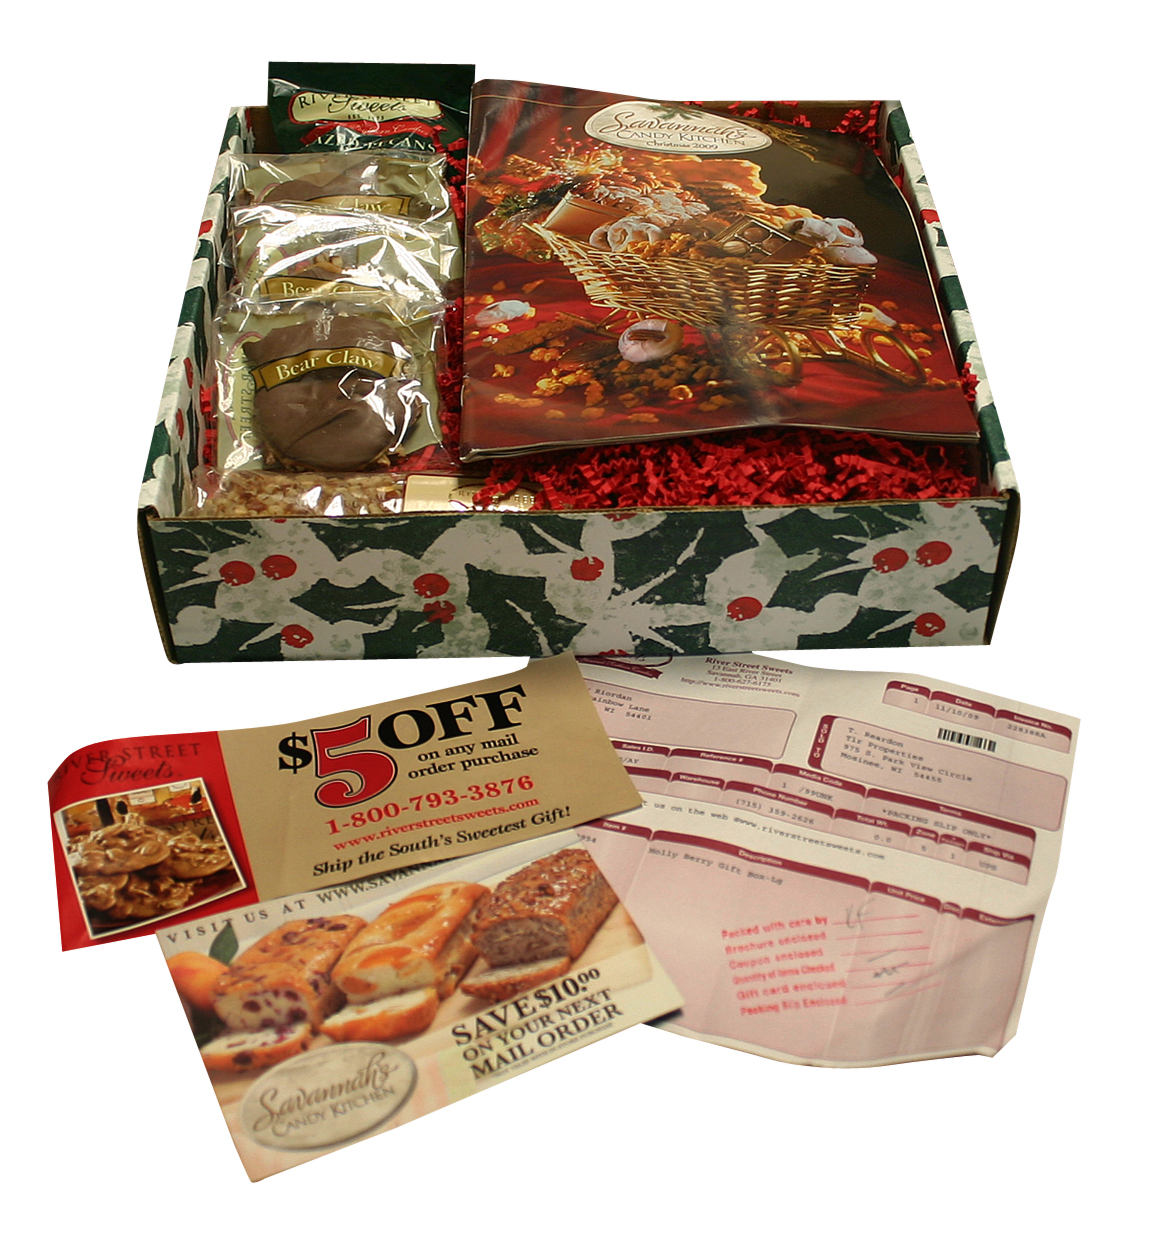 Gift-Packaged-with-flyers-and-catalogs.jpg